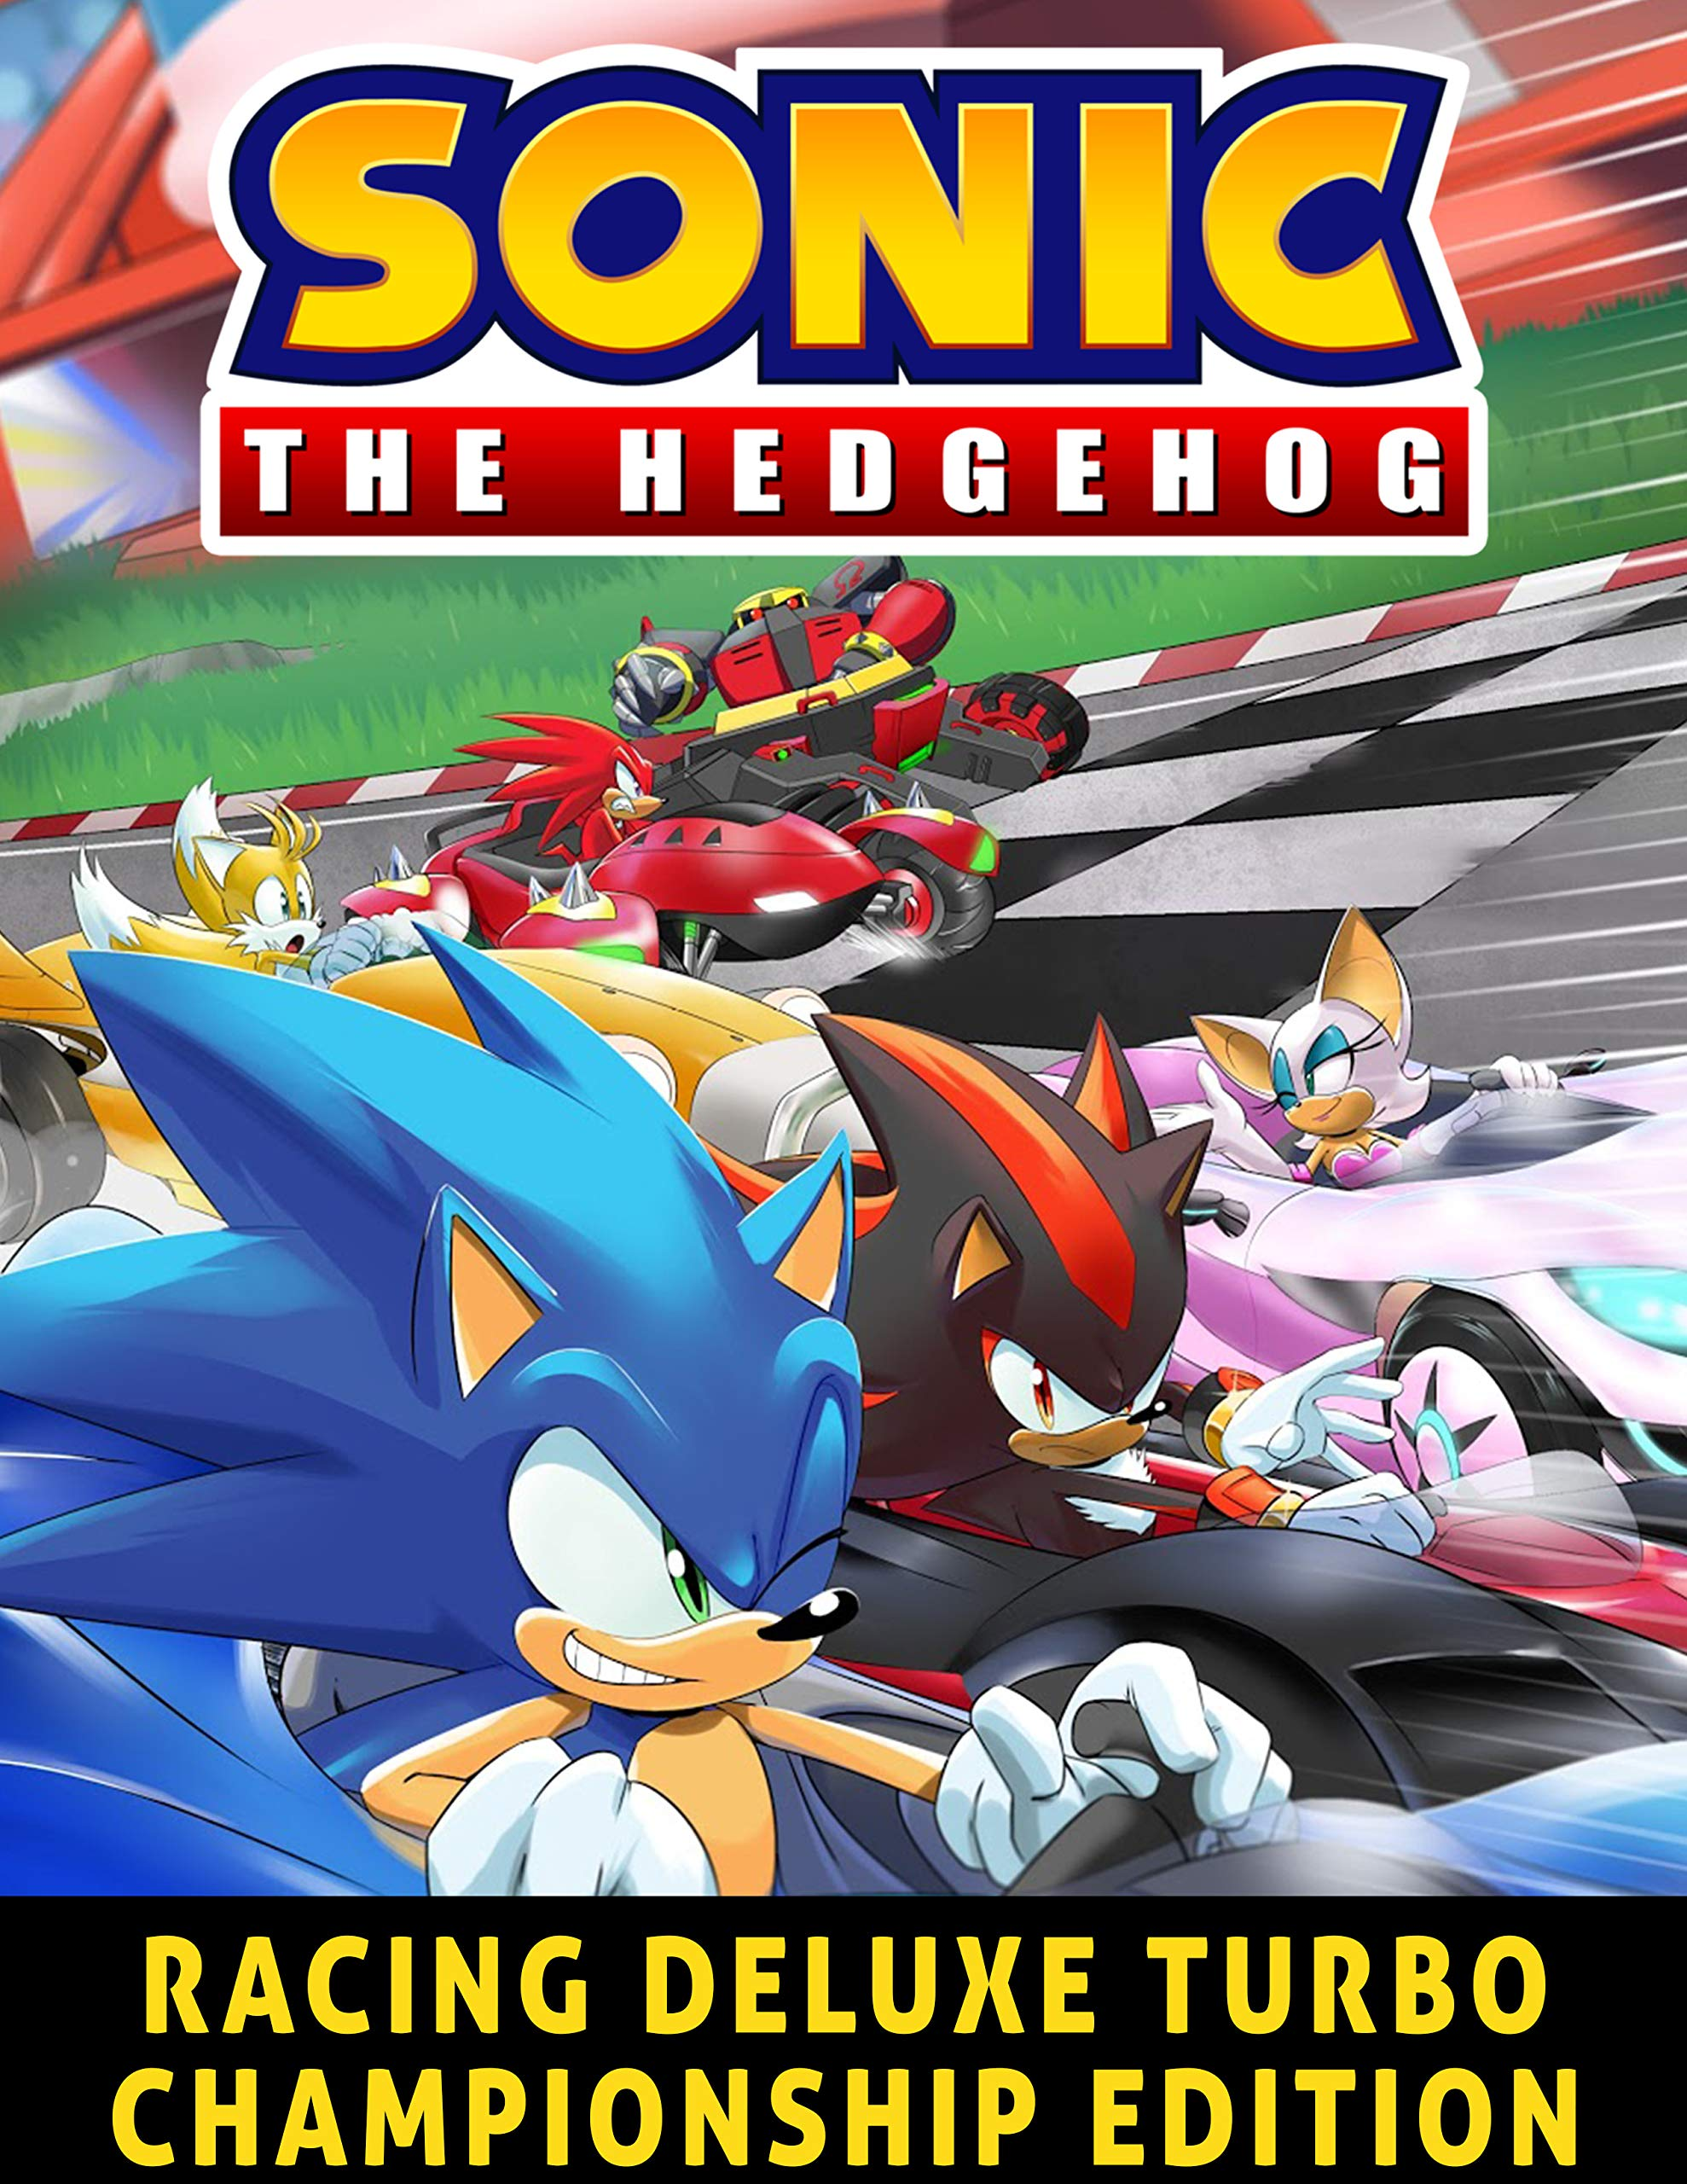 Sonic: The Hedgehog Team Sonic Racing Deluxe Turbo Championship Edition comic book